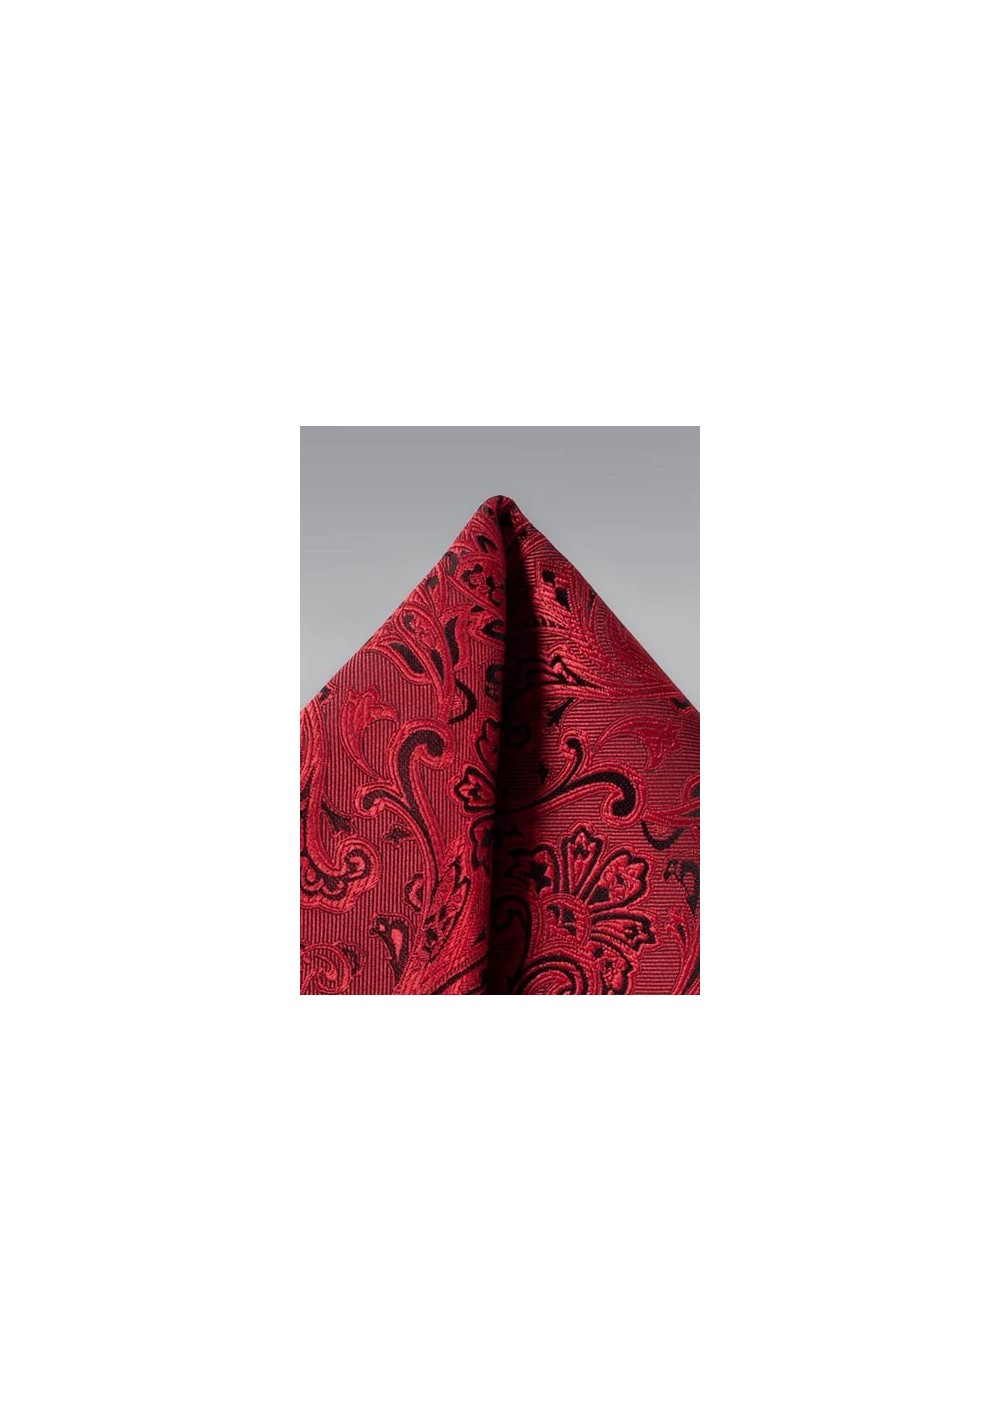 Pocket Hanky in Ruby Red